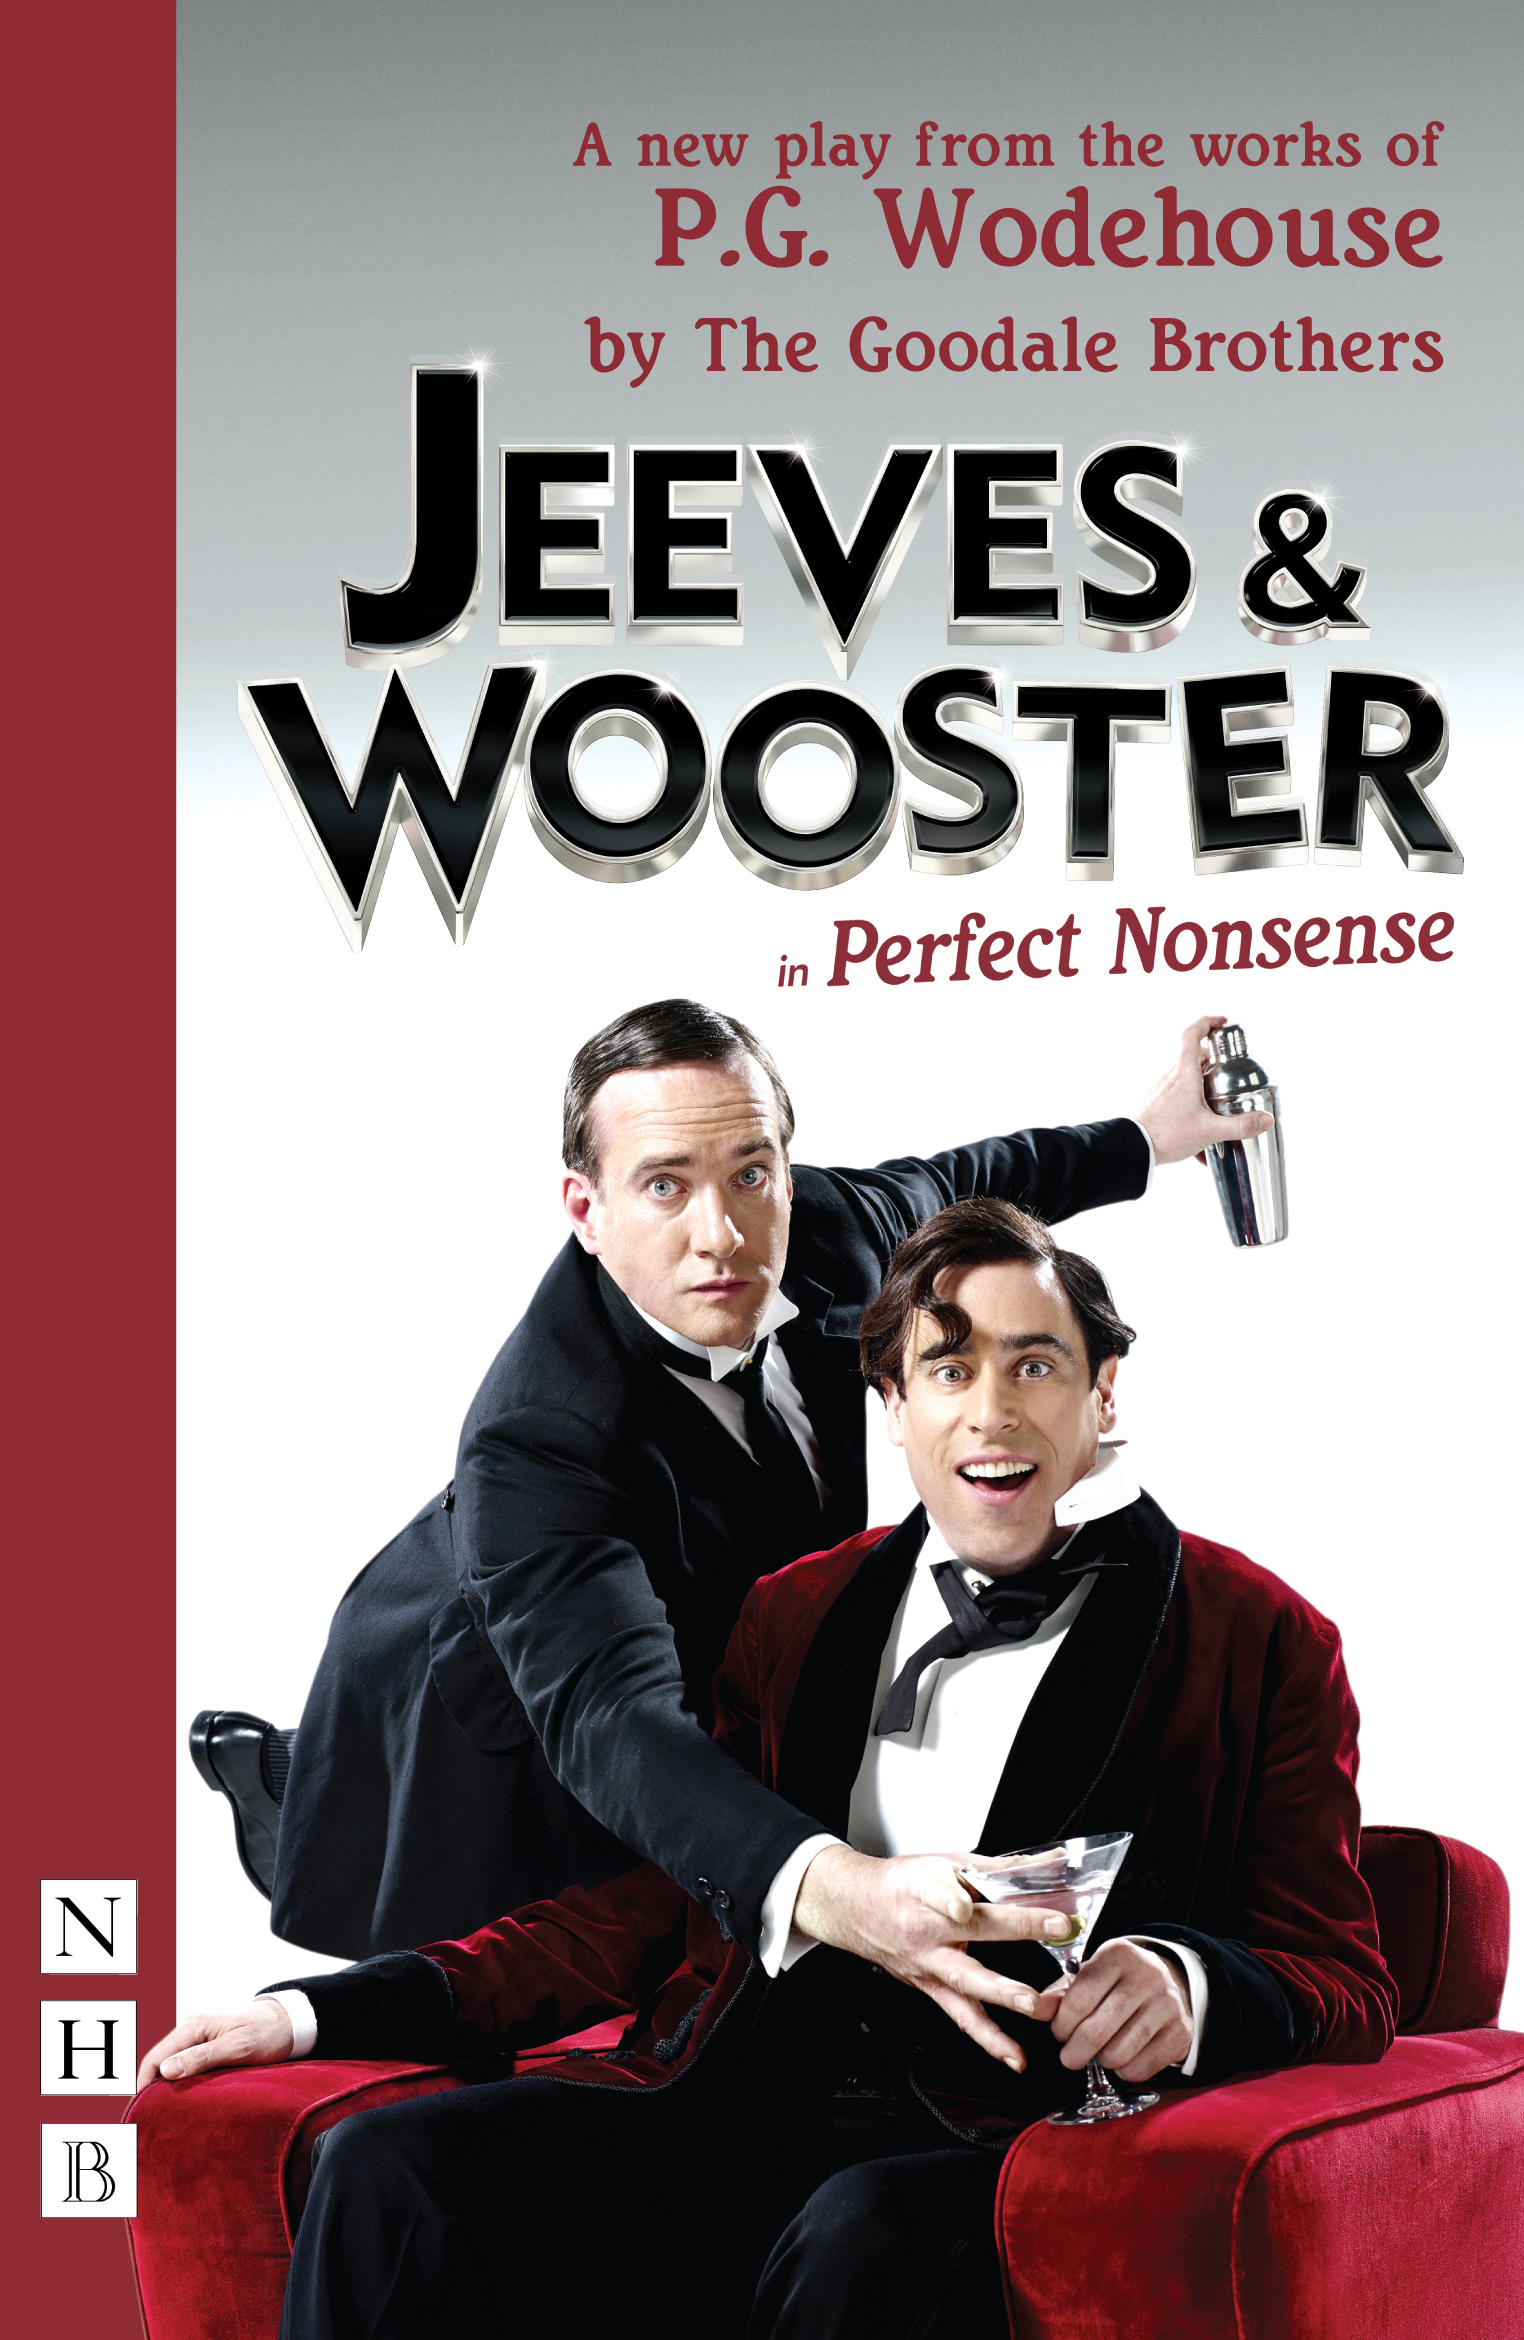 Nick Hern Books - Images for News items - Jeeves & Wooster